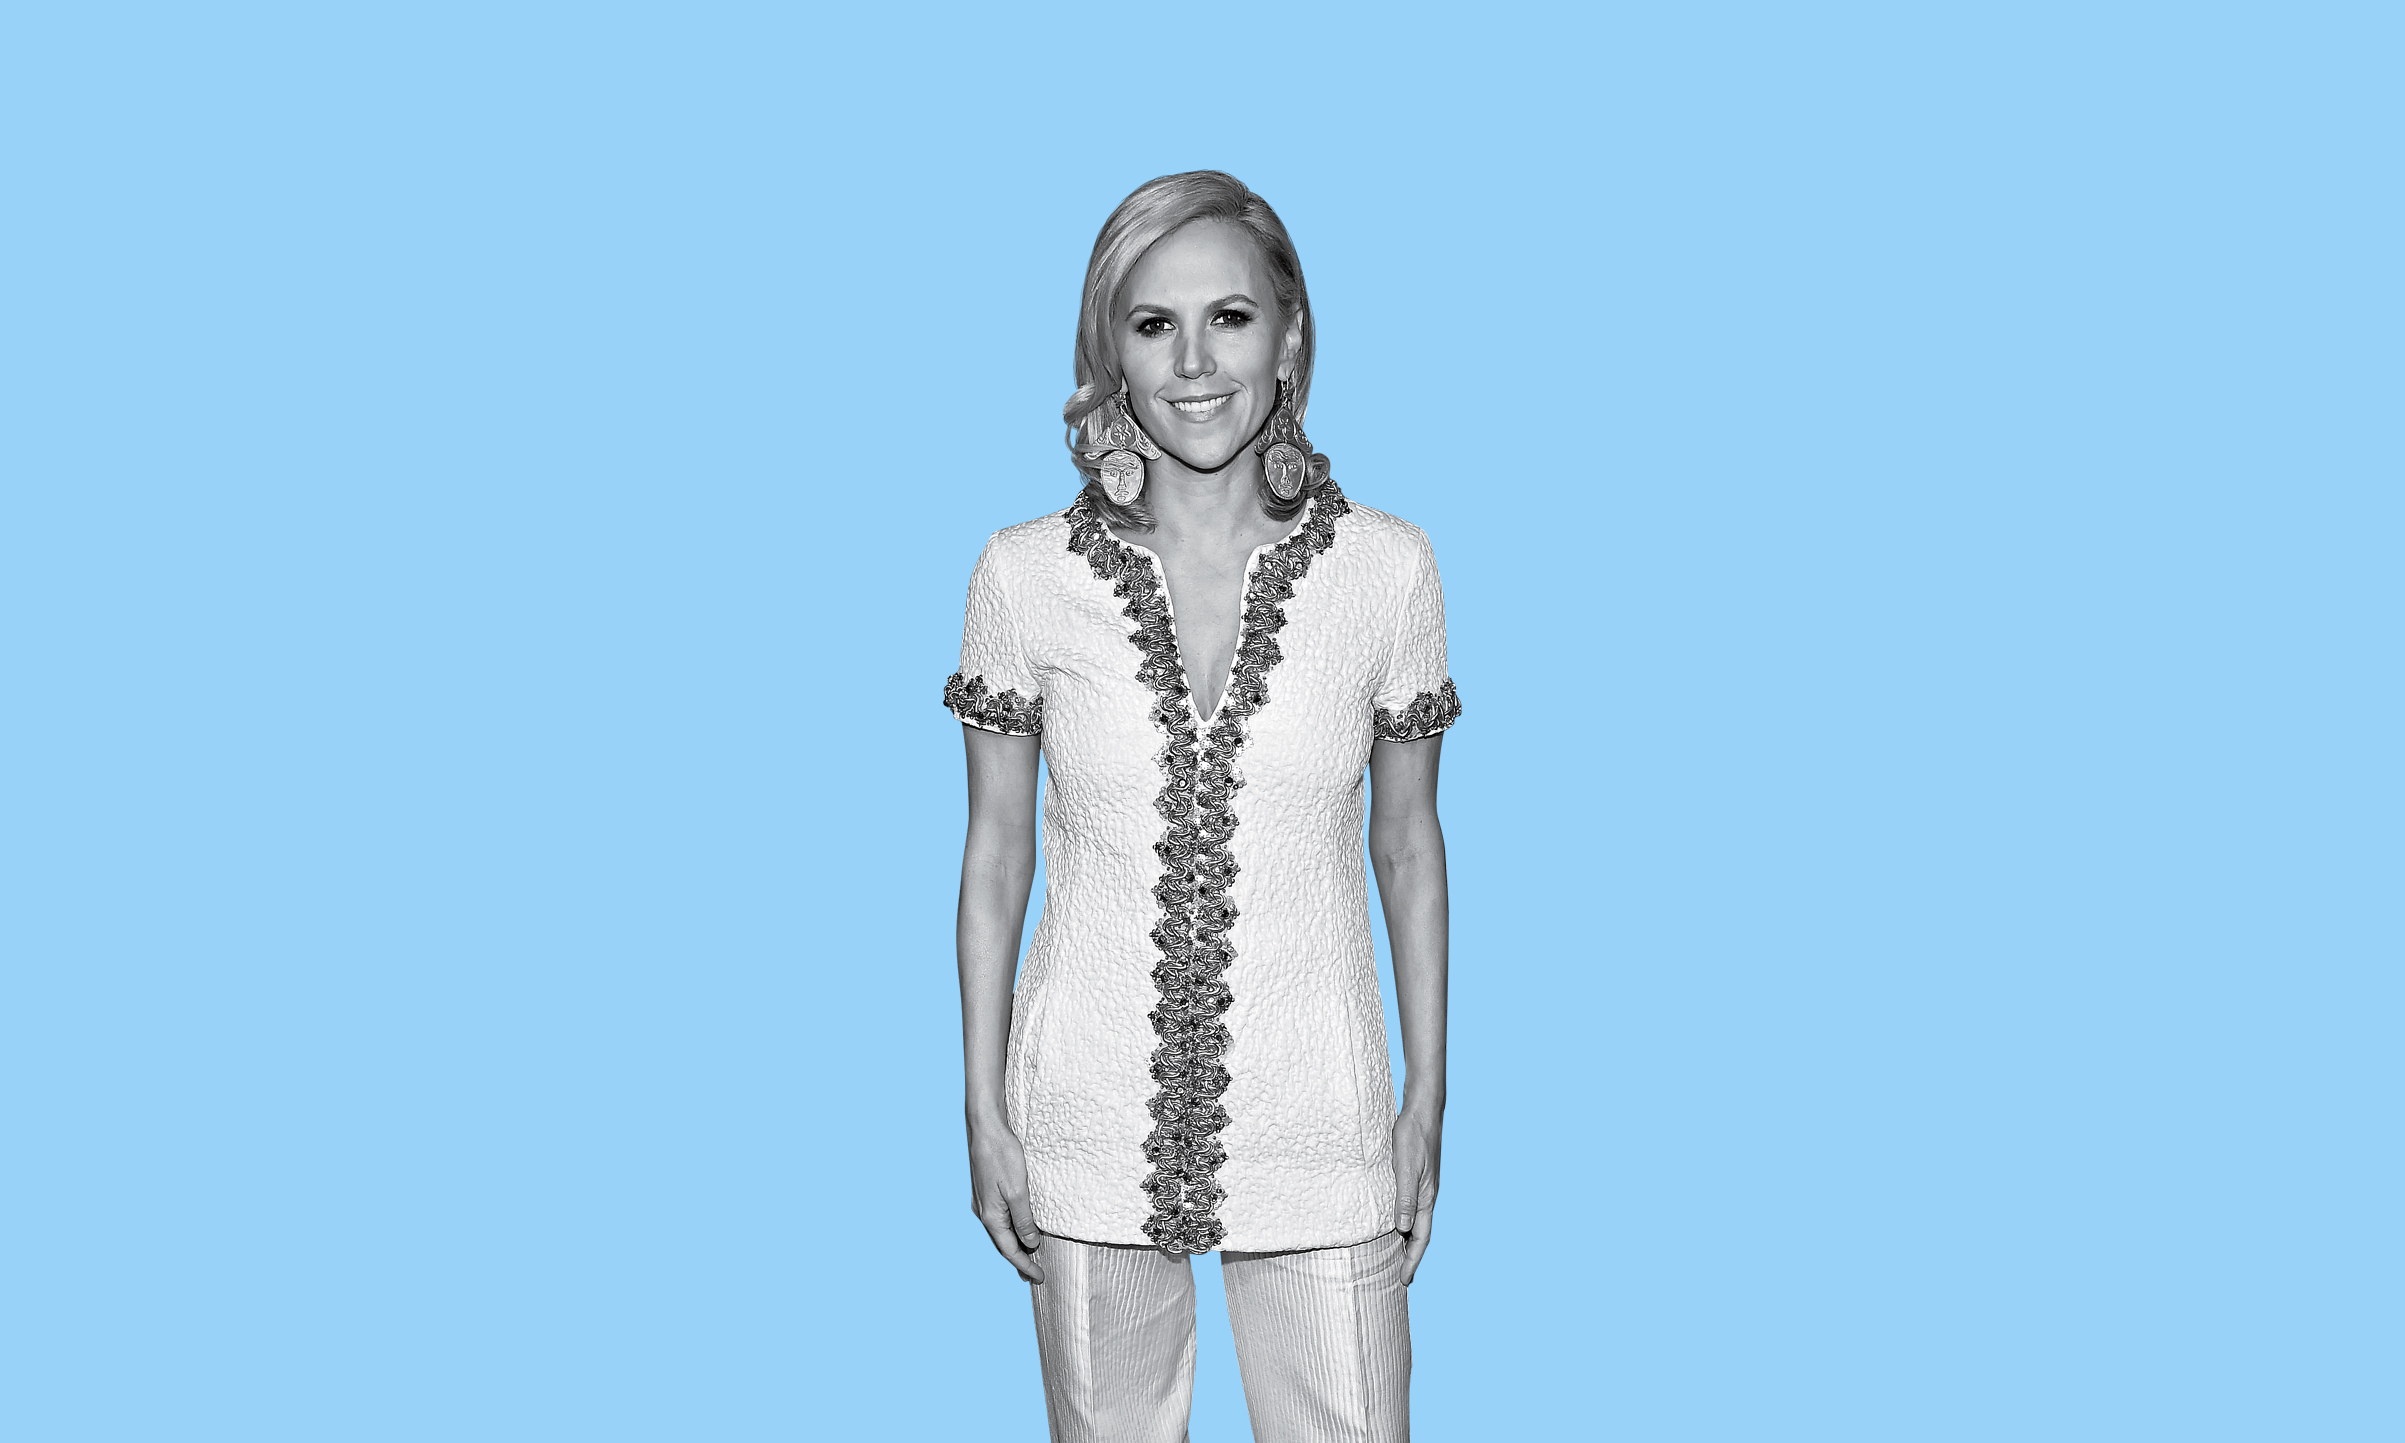 'Women are the backbone of society and their families. Helping them, in turn, helps comm unities and families' —Tory Burch